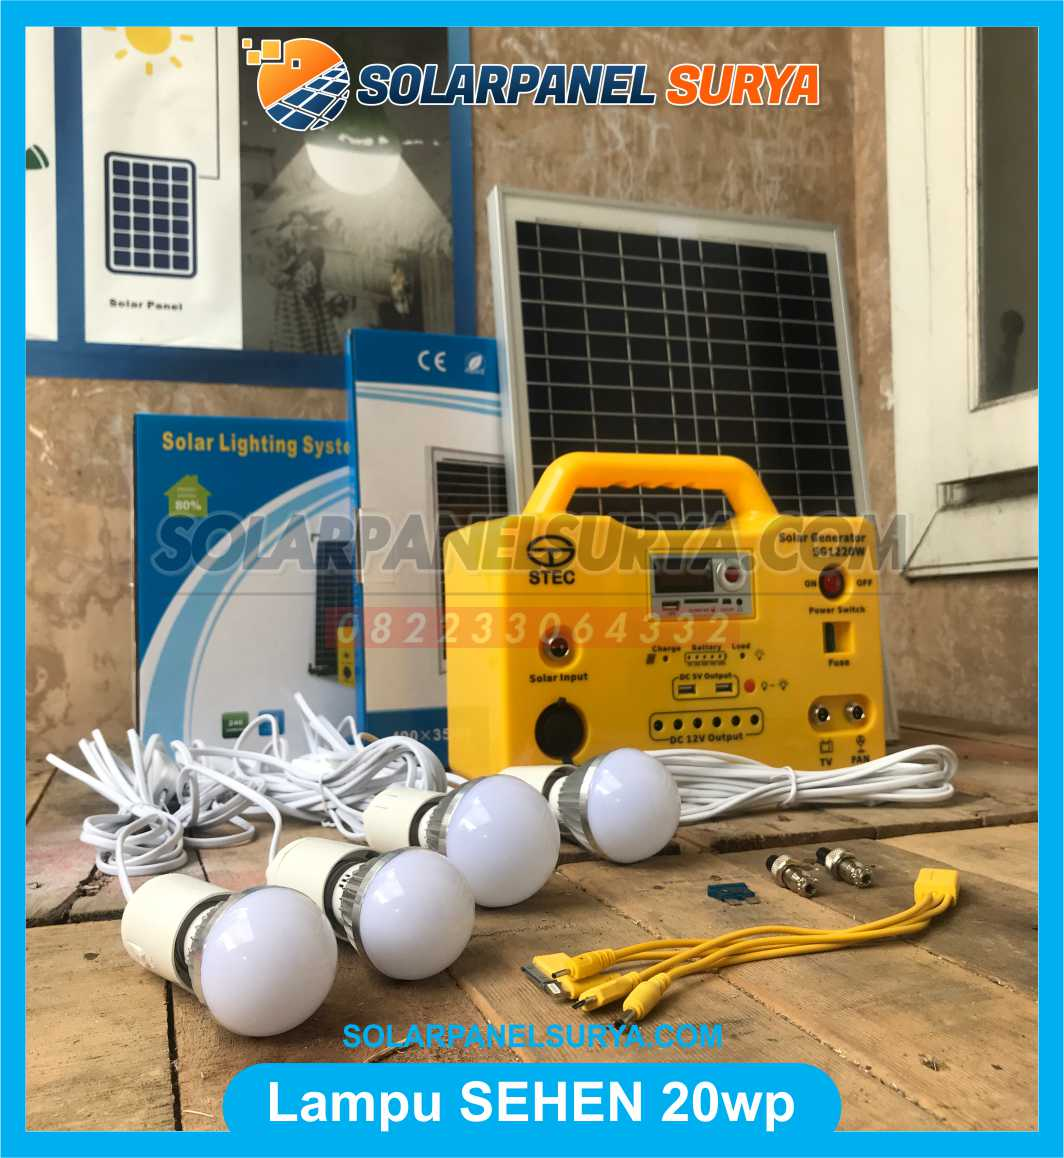 lampu sehen 20wp solar cell